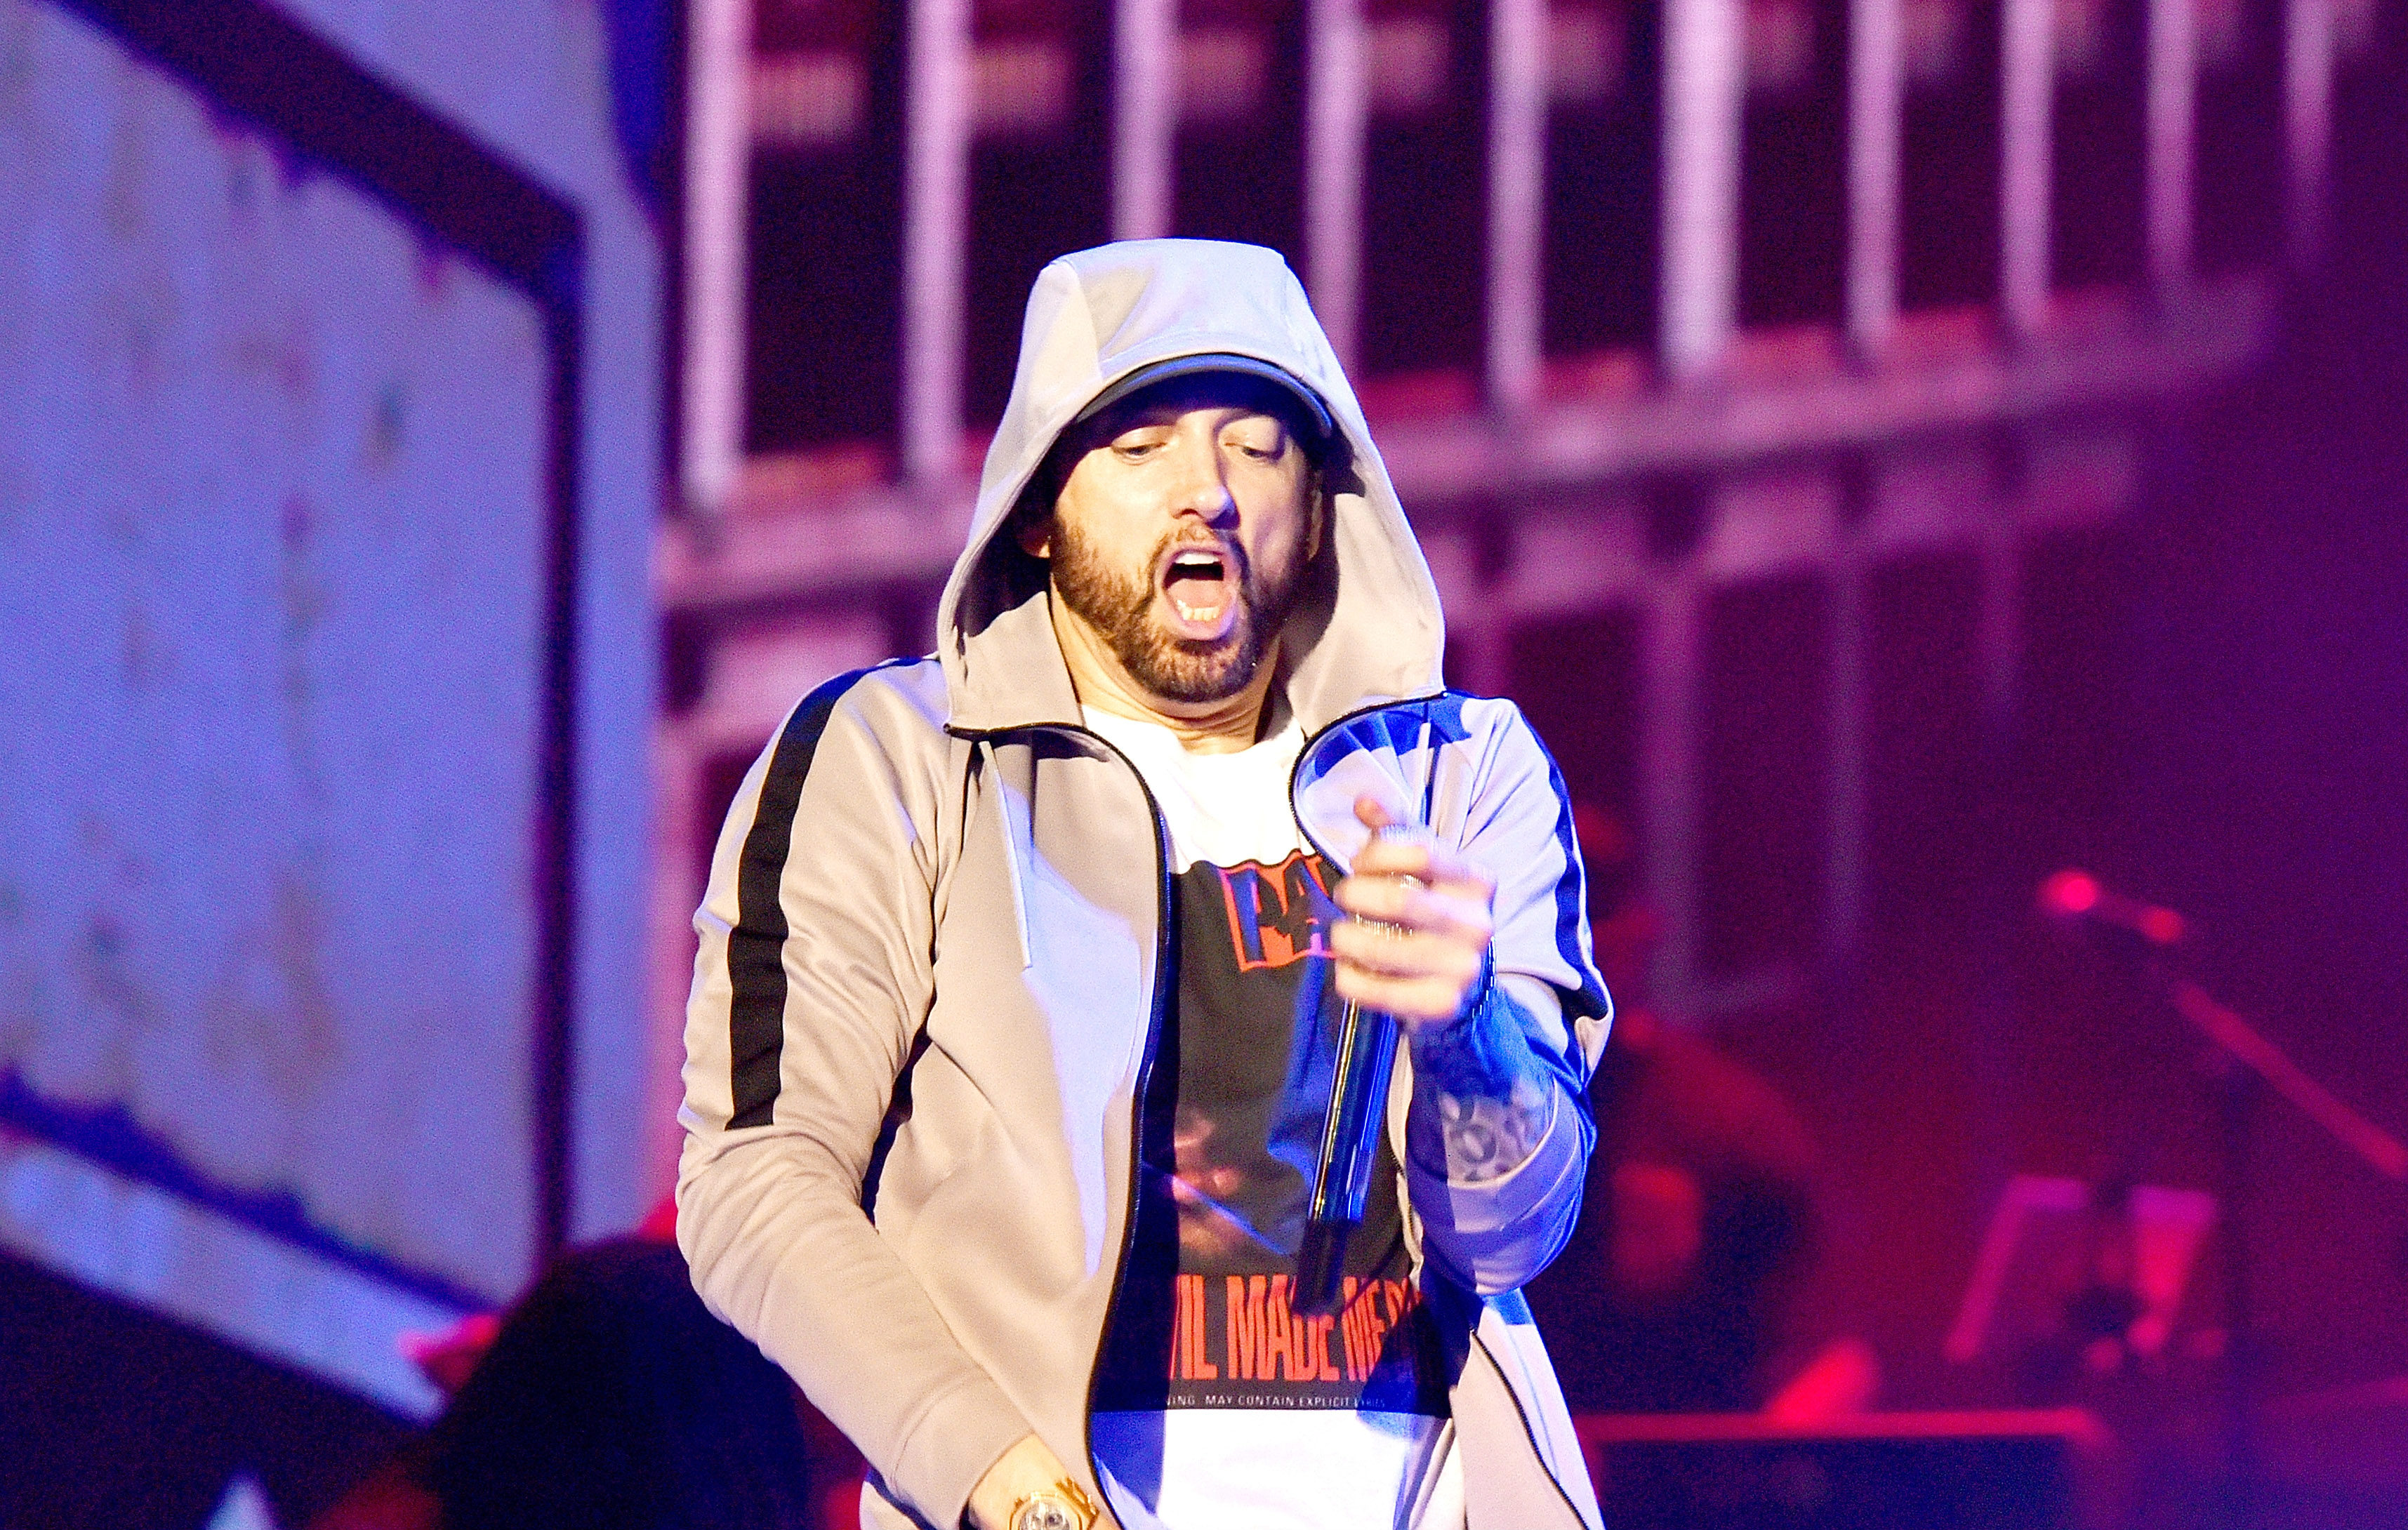 Eminem has announced his first tour dates for 2019